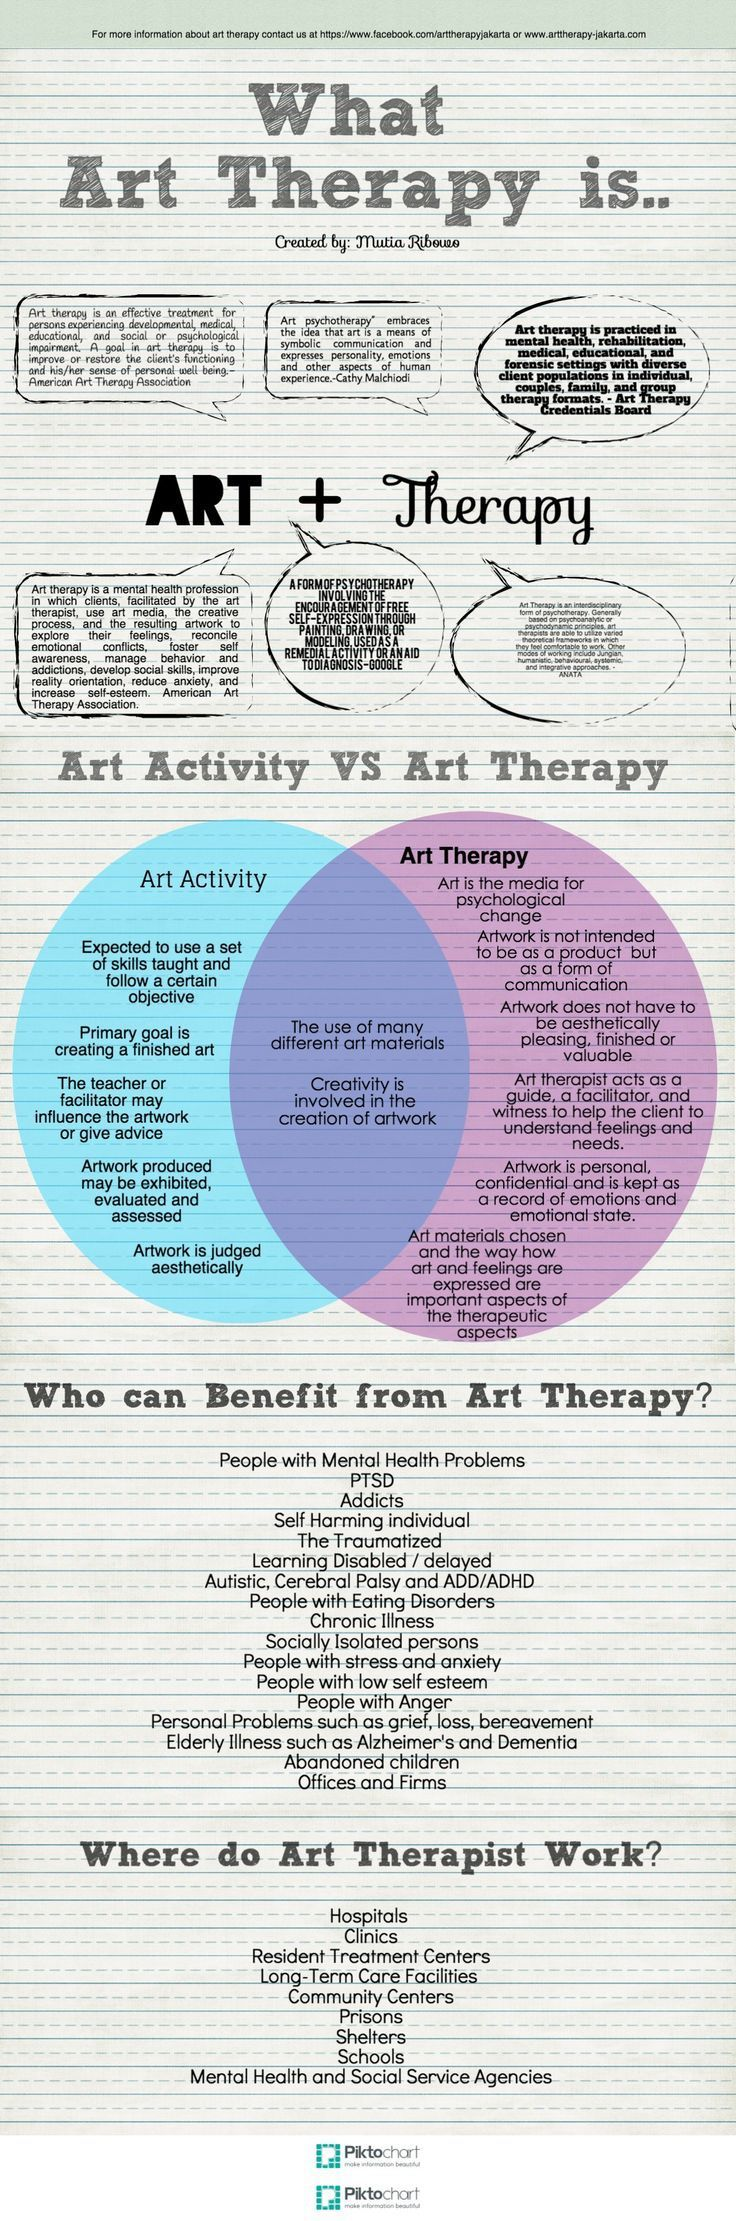 Information about art therapy, how art therapy differ from art activities, and who can benefit art therapy.